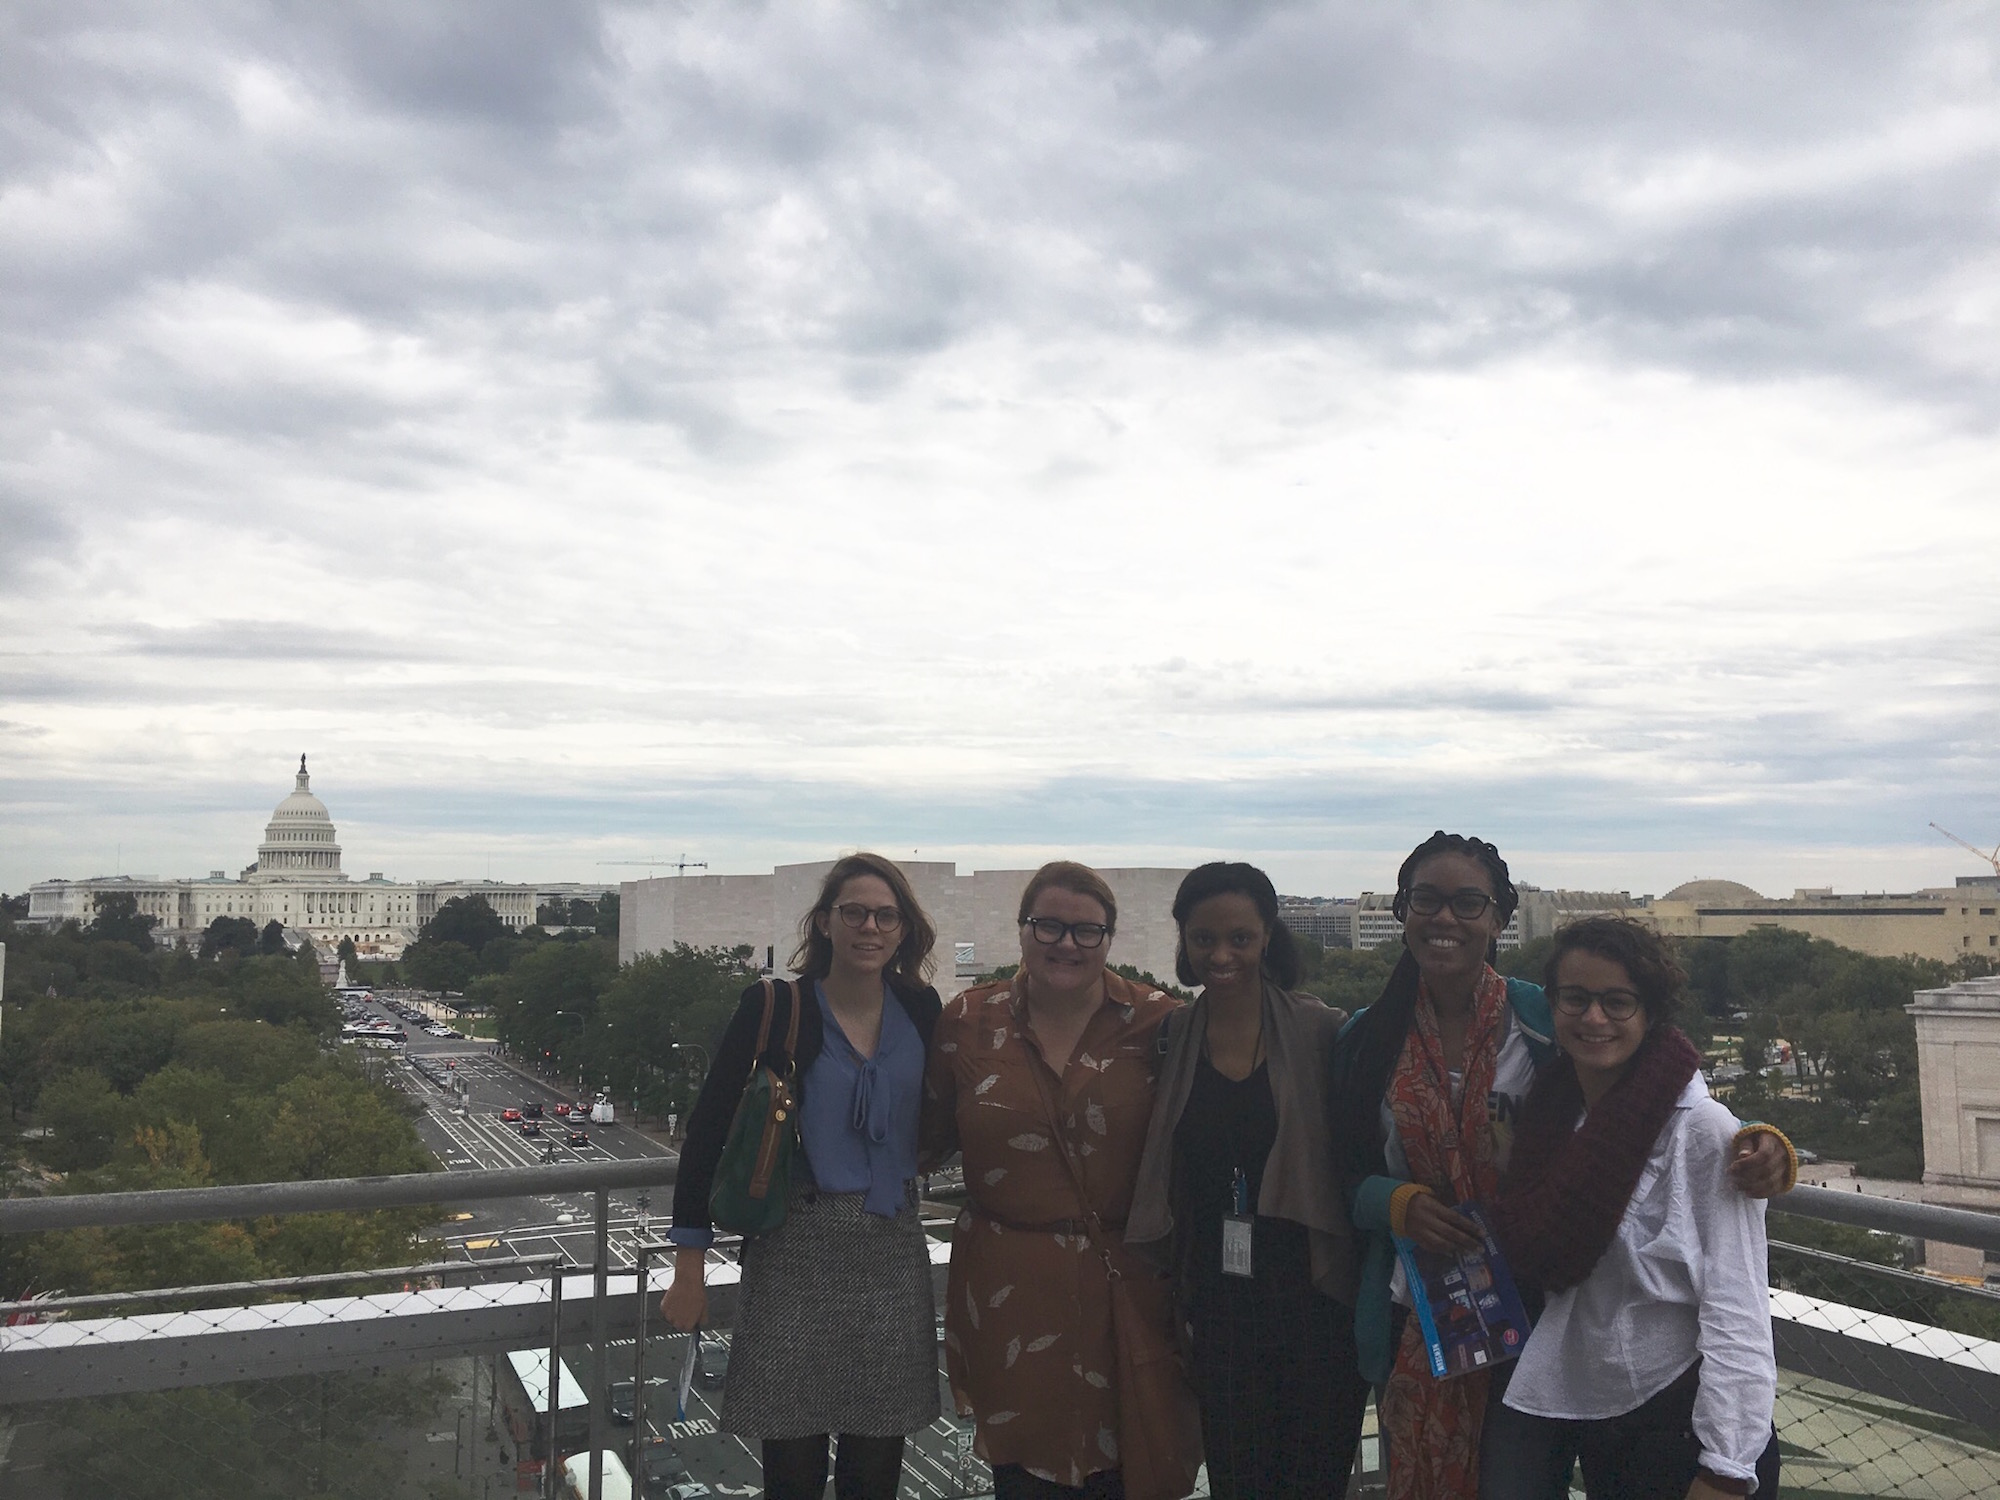 Interns from the National Museum of American History with Pennsylvania Avenue and the Capitol in the background